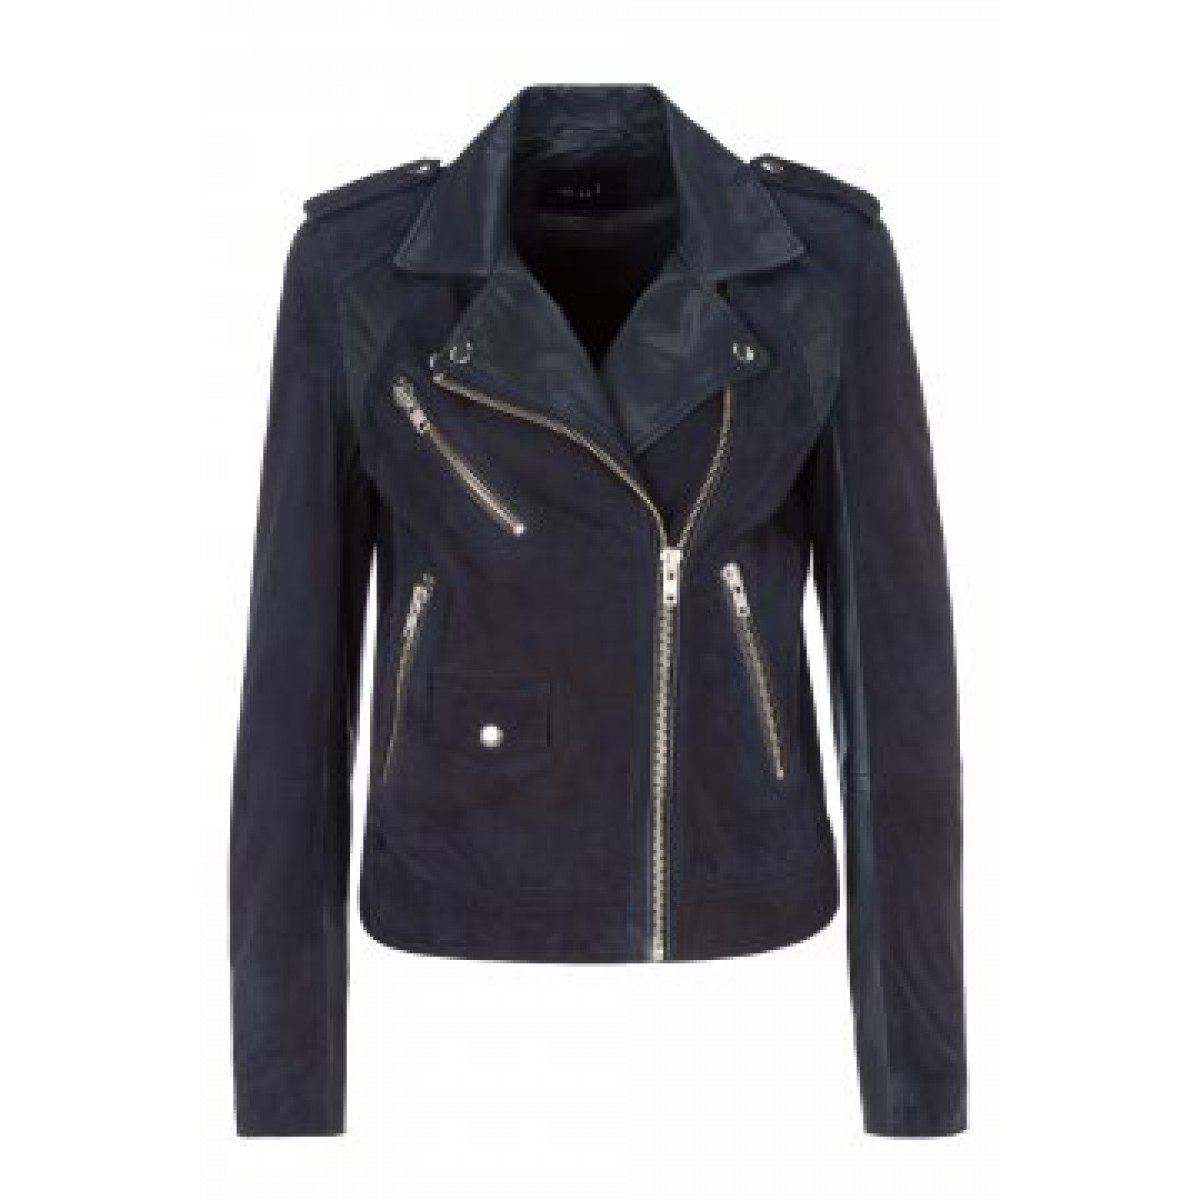 Oui 45548 Jacket Black-31